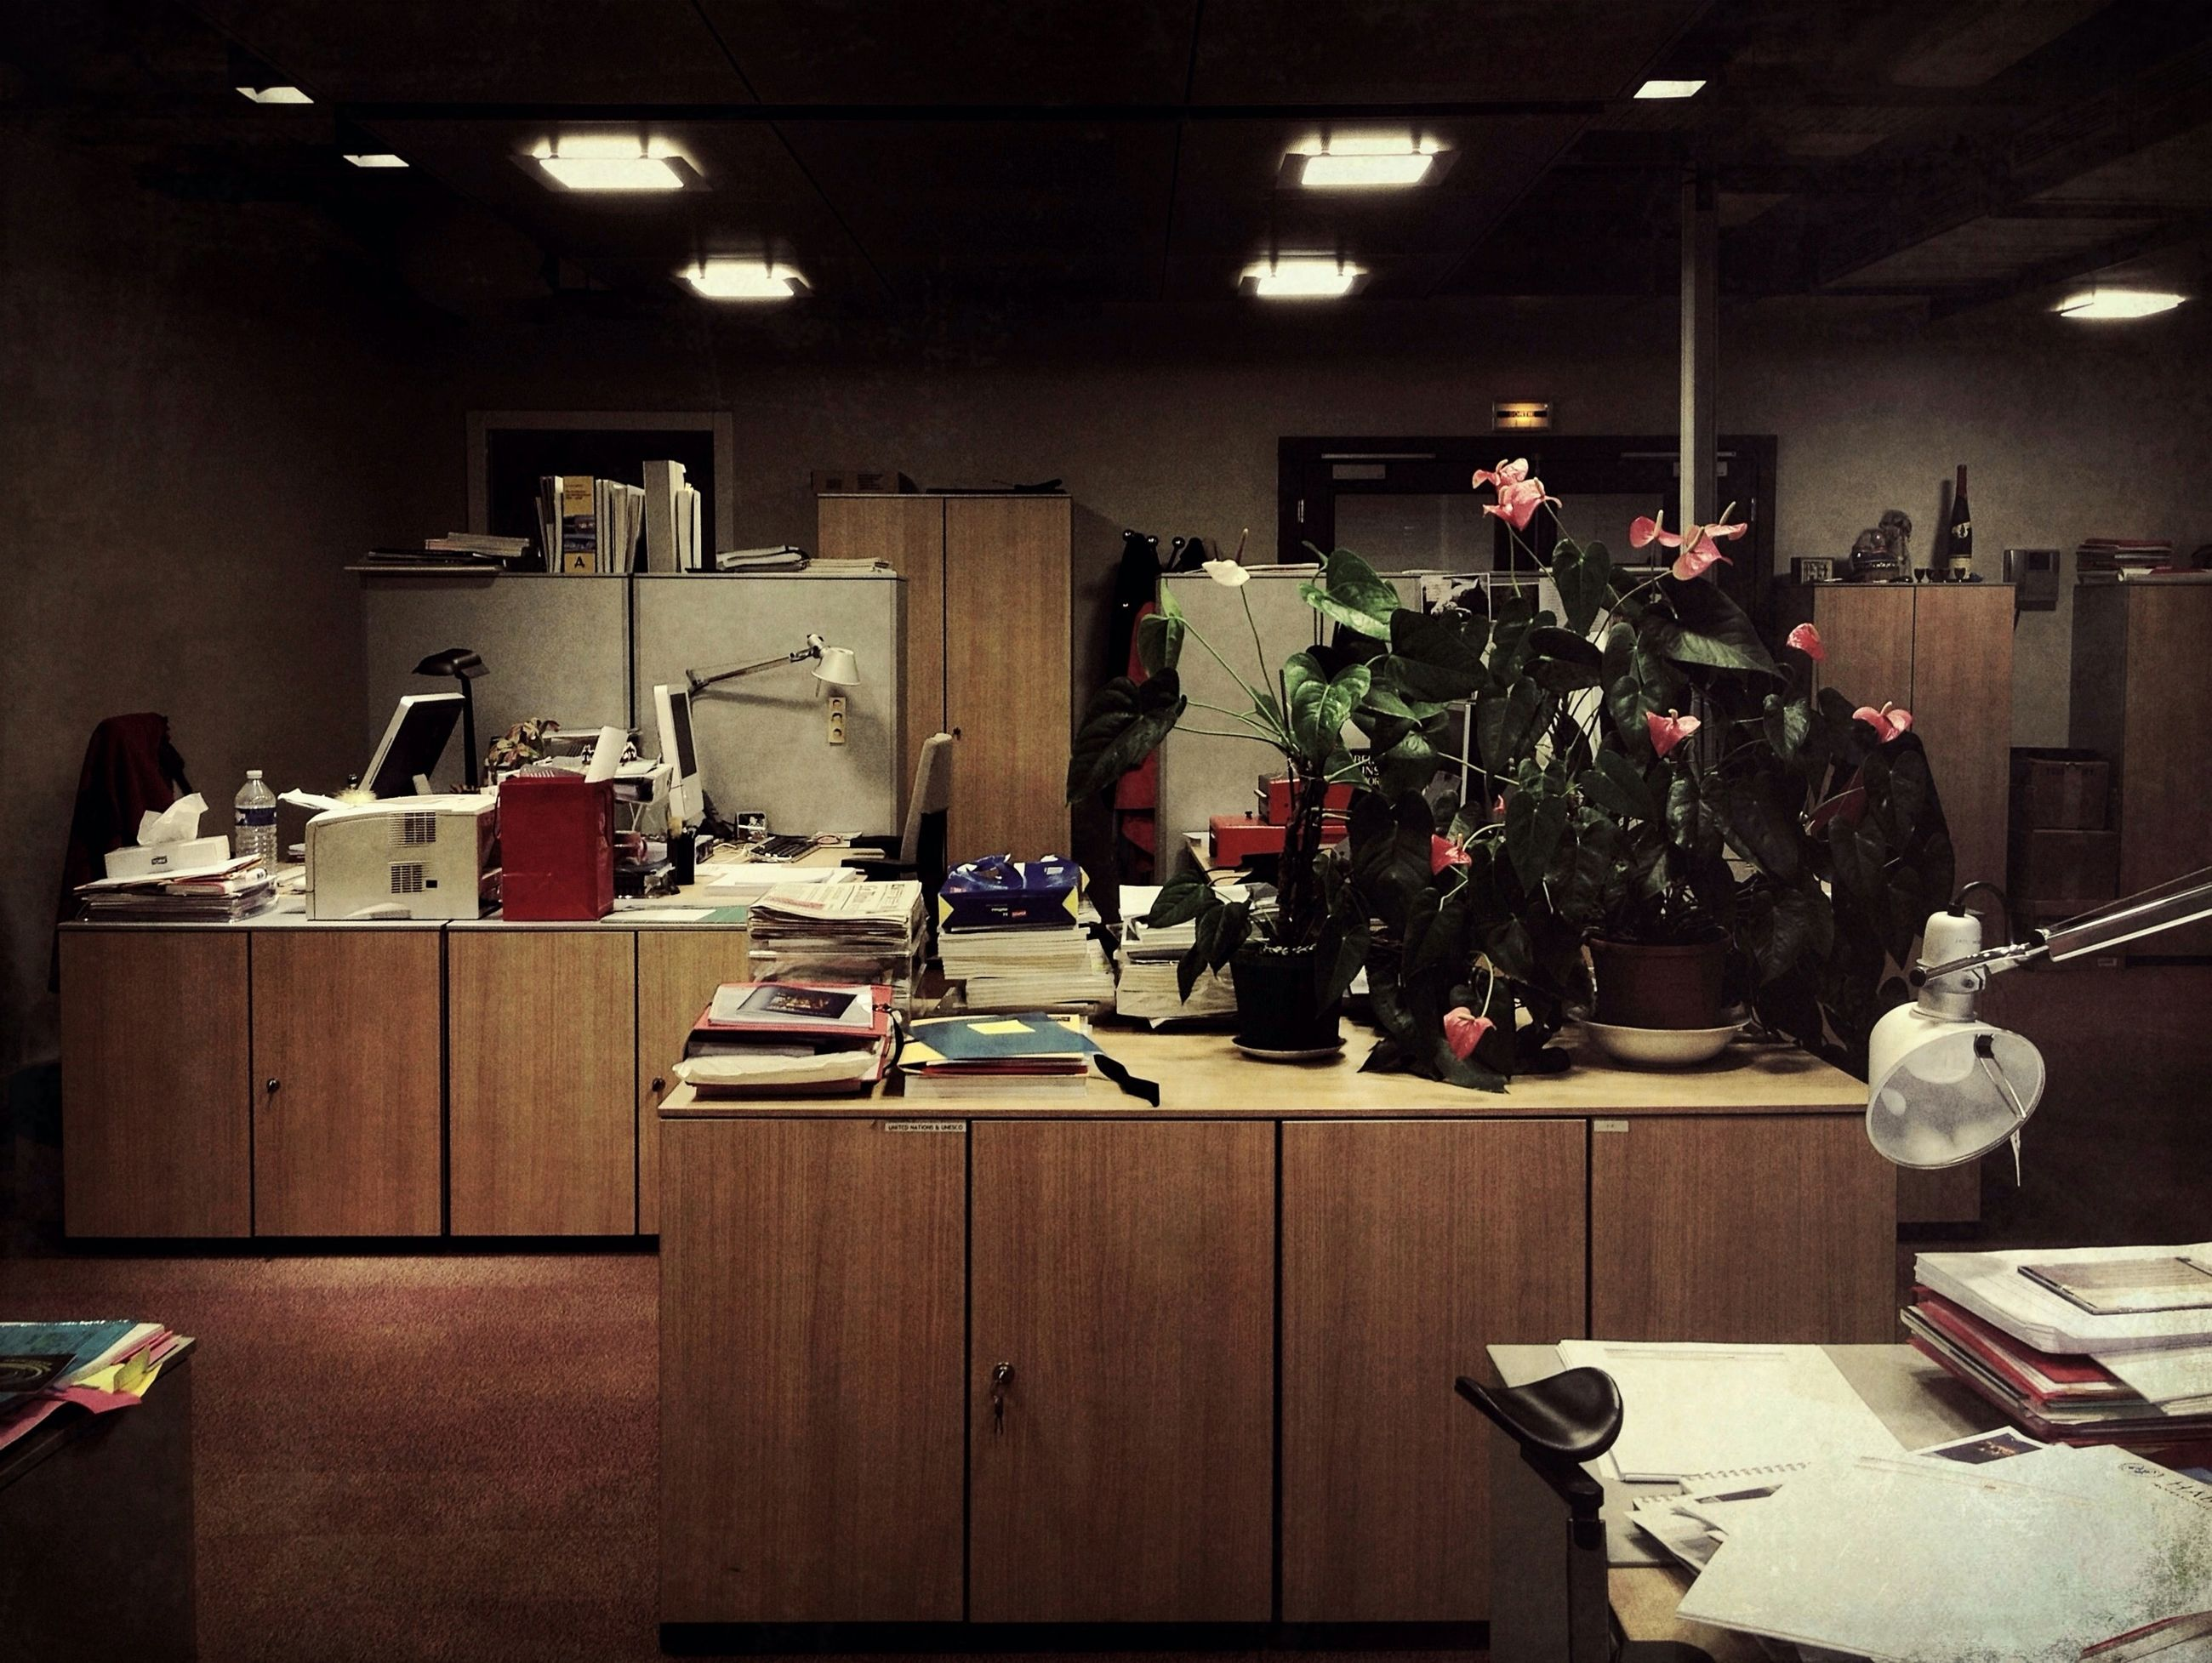 indoors, table, chair, high angle view, built structure, architecture, men, illuminated, large group of objects, night, restaurant, arrangement, lighting equipment, variation, absence, person, hanging, choice